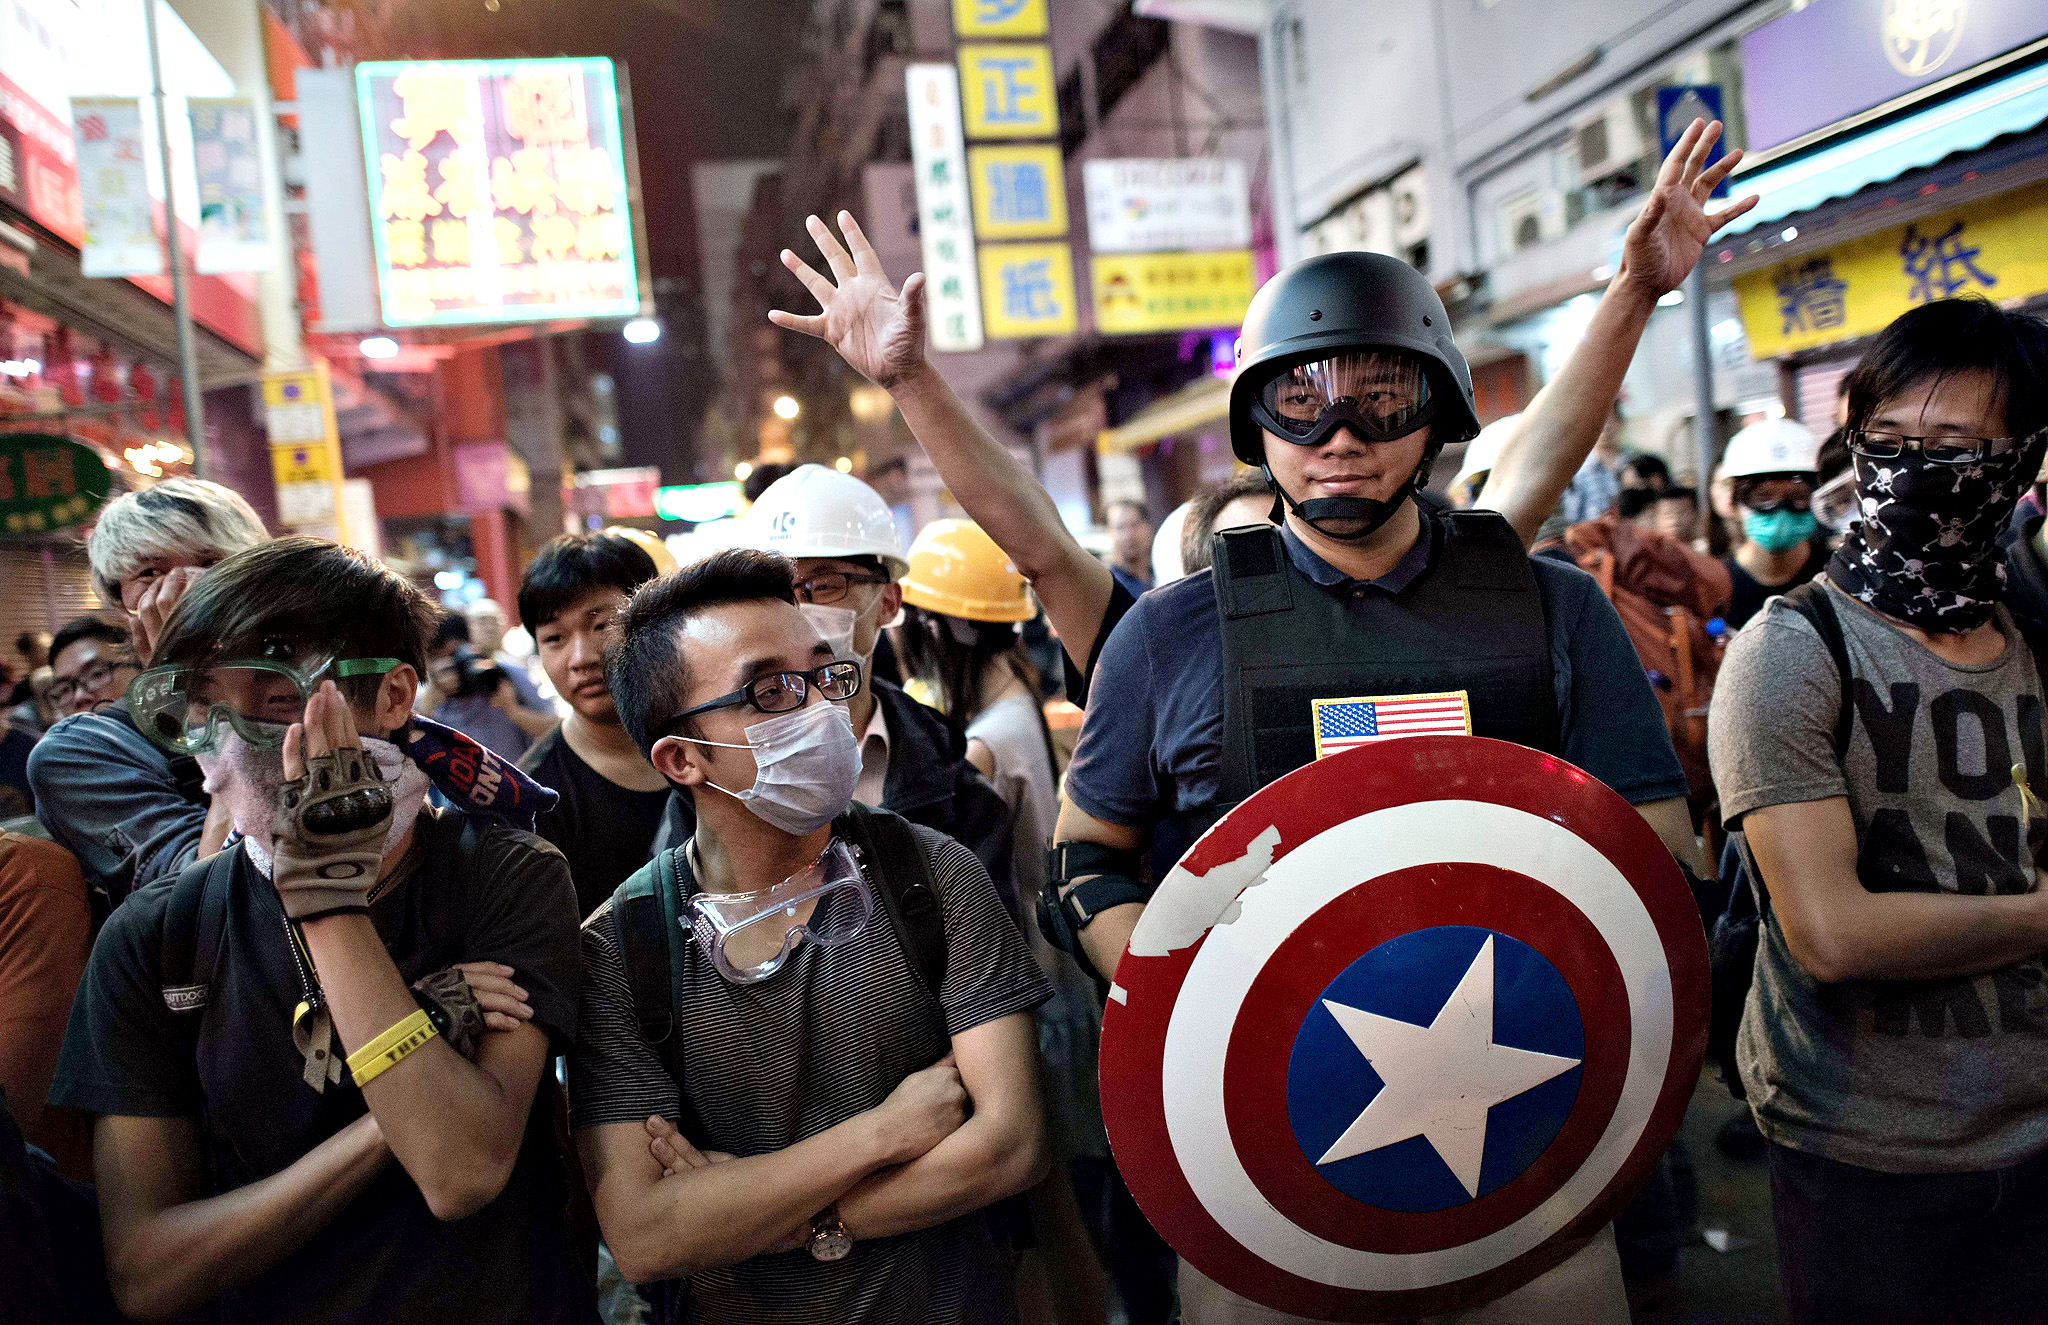 Pro-democracy protesters stand their ground on a barricaded road in the Mongkok district of Hong Kong on October 23, 2014. Major intersections in the southern Chinese city have been paralysed by mass rallies demanding free elections for more than three weeks, in one of the biggest challenges to Beijing's authority since the Tiananmen pro-democracy protests of 1989.